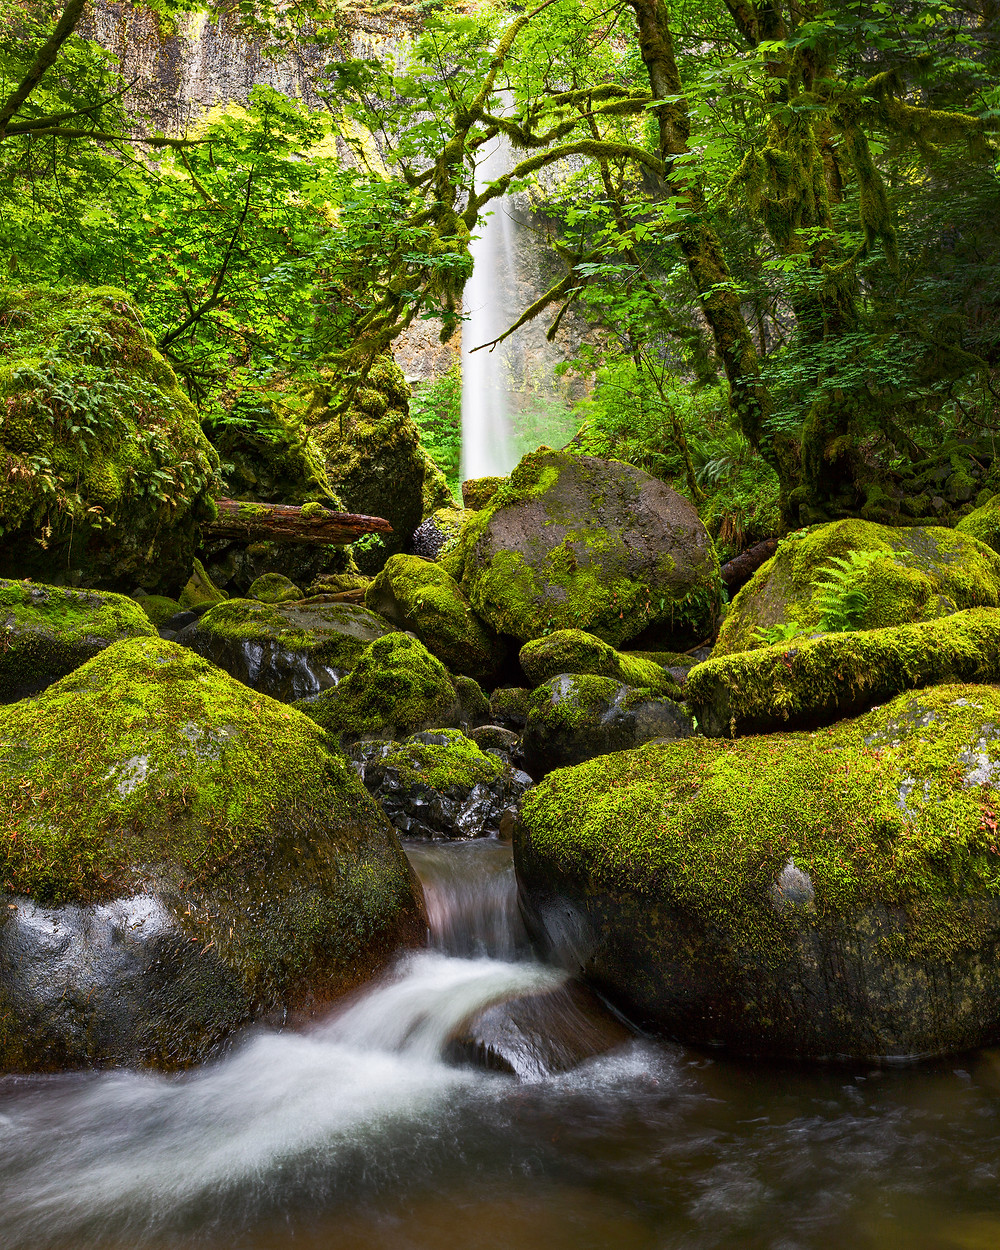 A waterfall in Oregon's Columbia River Gorge pours at the end of a natural tunnel of spring leaves and moss covered rocks as the resulting creek winds through the green landscape.